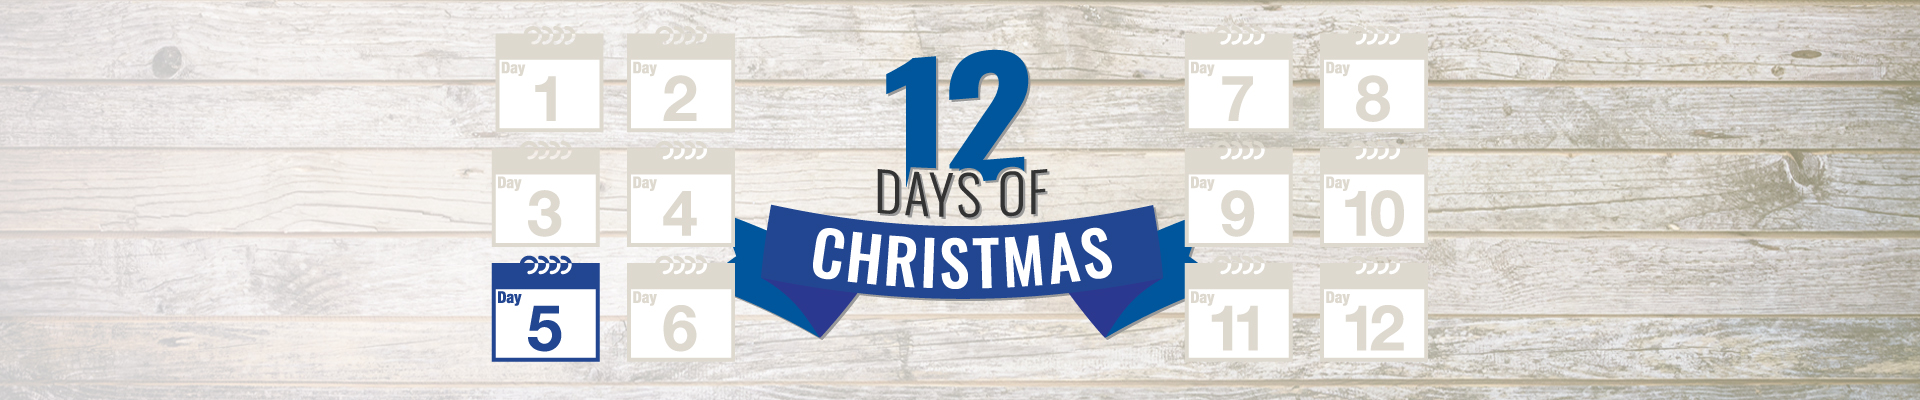 12 Days of Christmas Deals - 2017-12-17